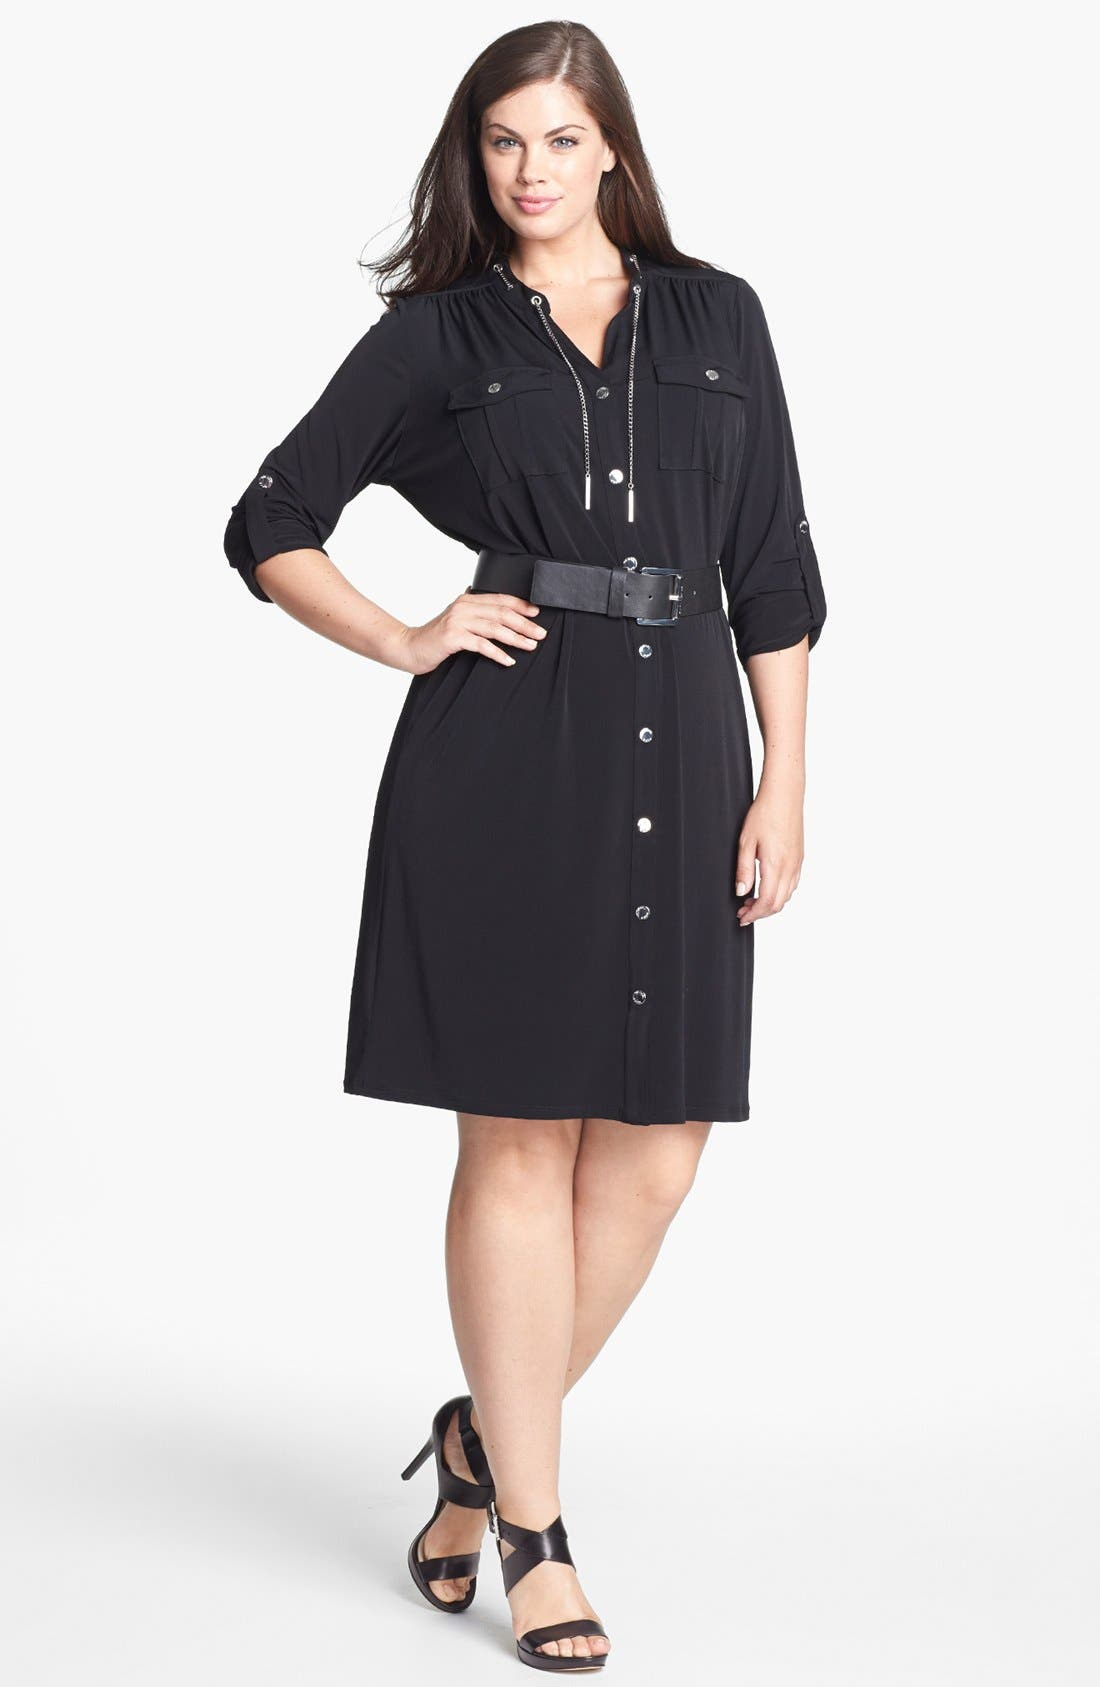 Alternate Image 1 Selected - MICHAEL Michael Kors Chain Detail Shirtdress (Plus Size)